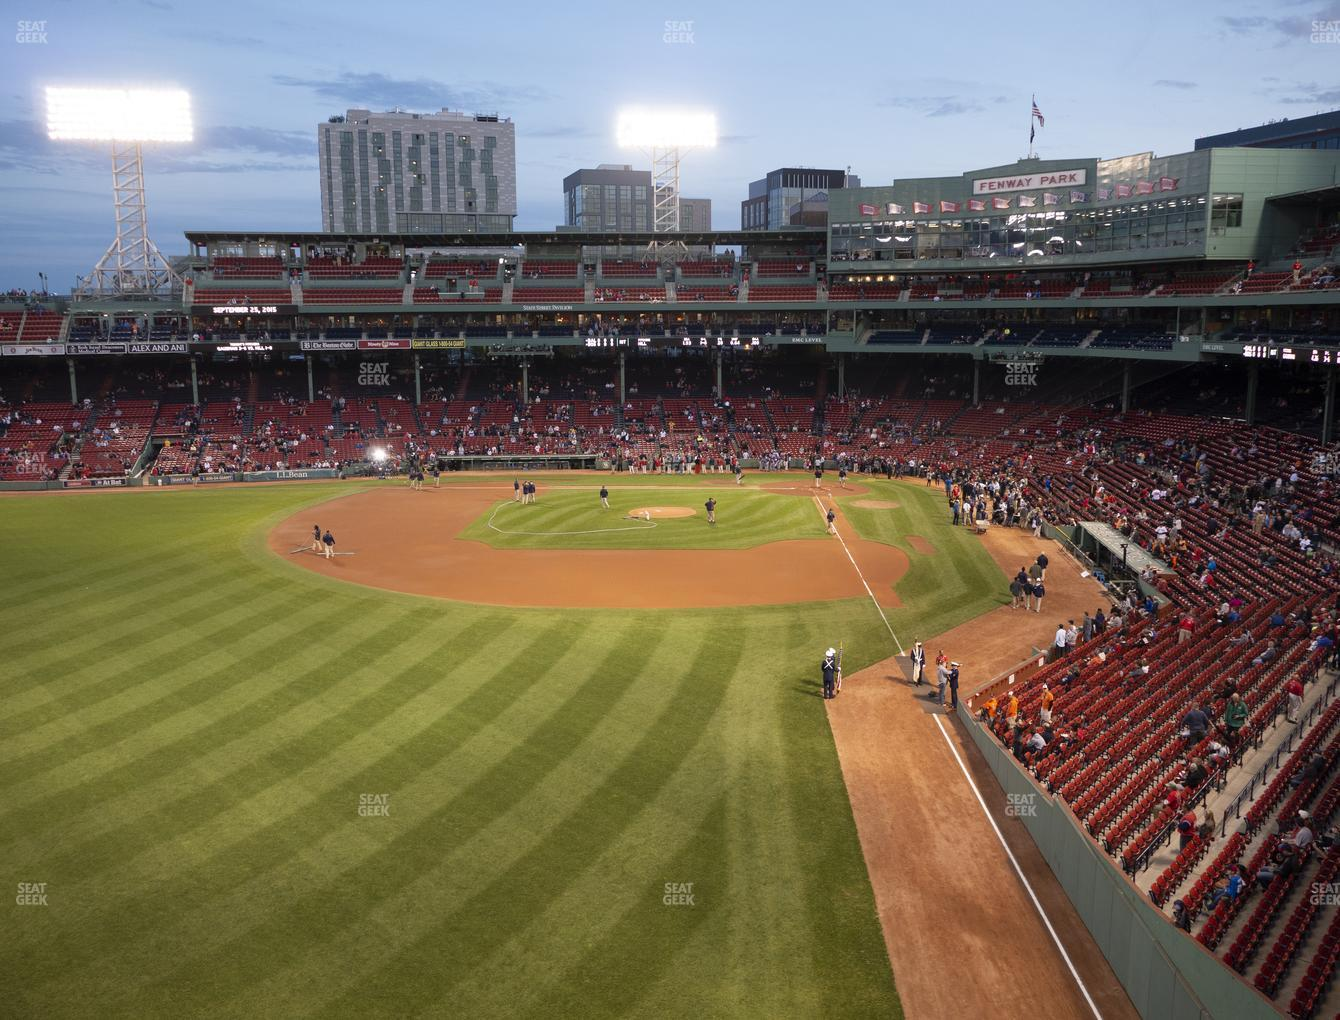 Boston Red Sox at Fenway Park Green Monster 2 View